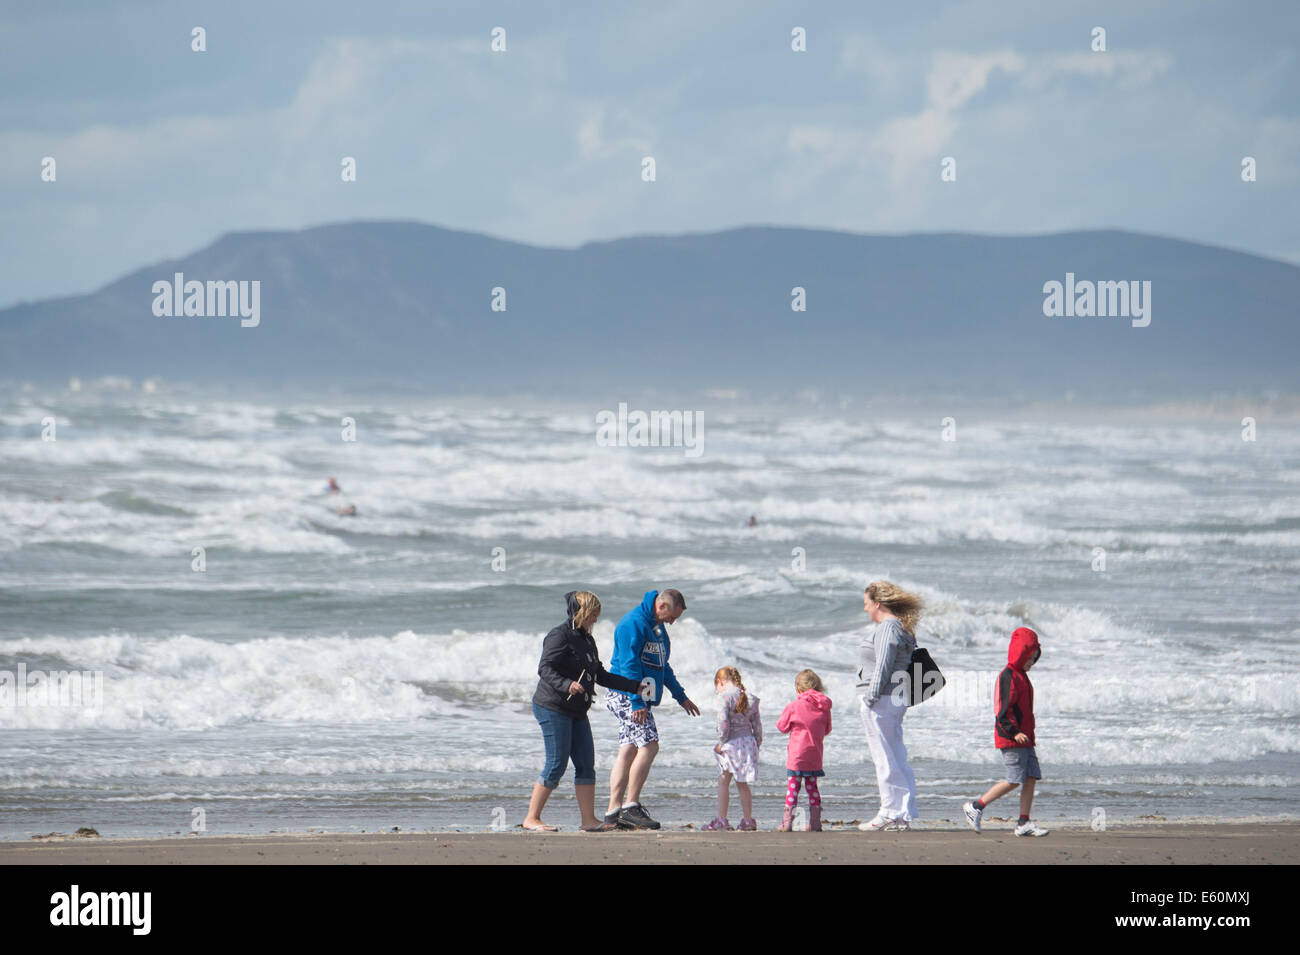 Borth, Ceredigion, Wales, UK. 10th August, 2014.High winds on the coast as the tail end of Hurricane Bertha passes. - Stock Image